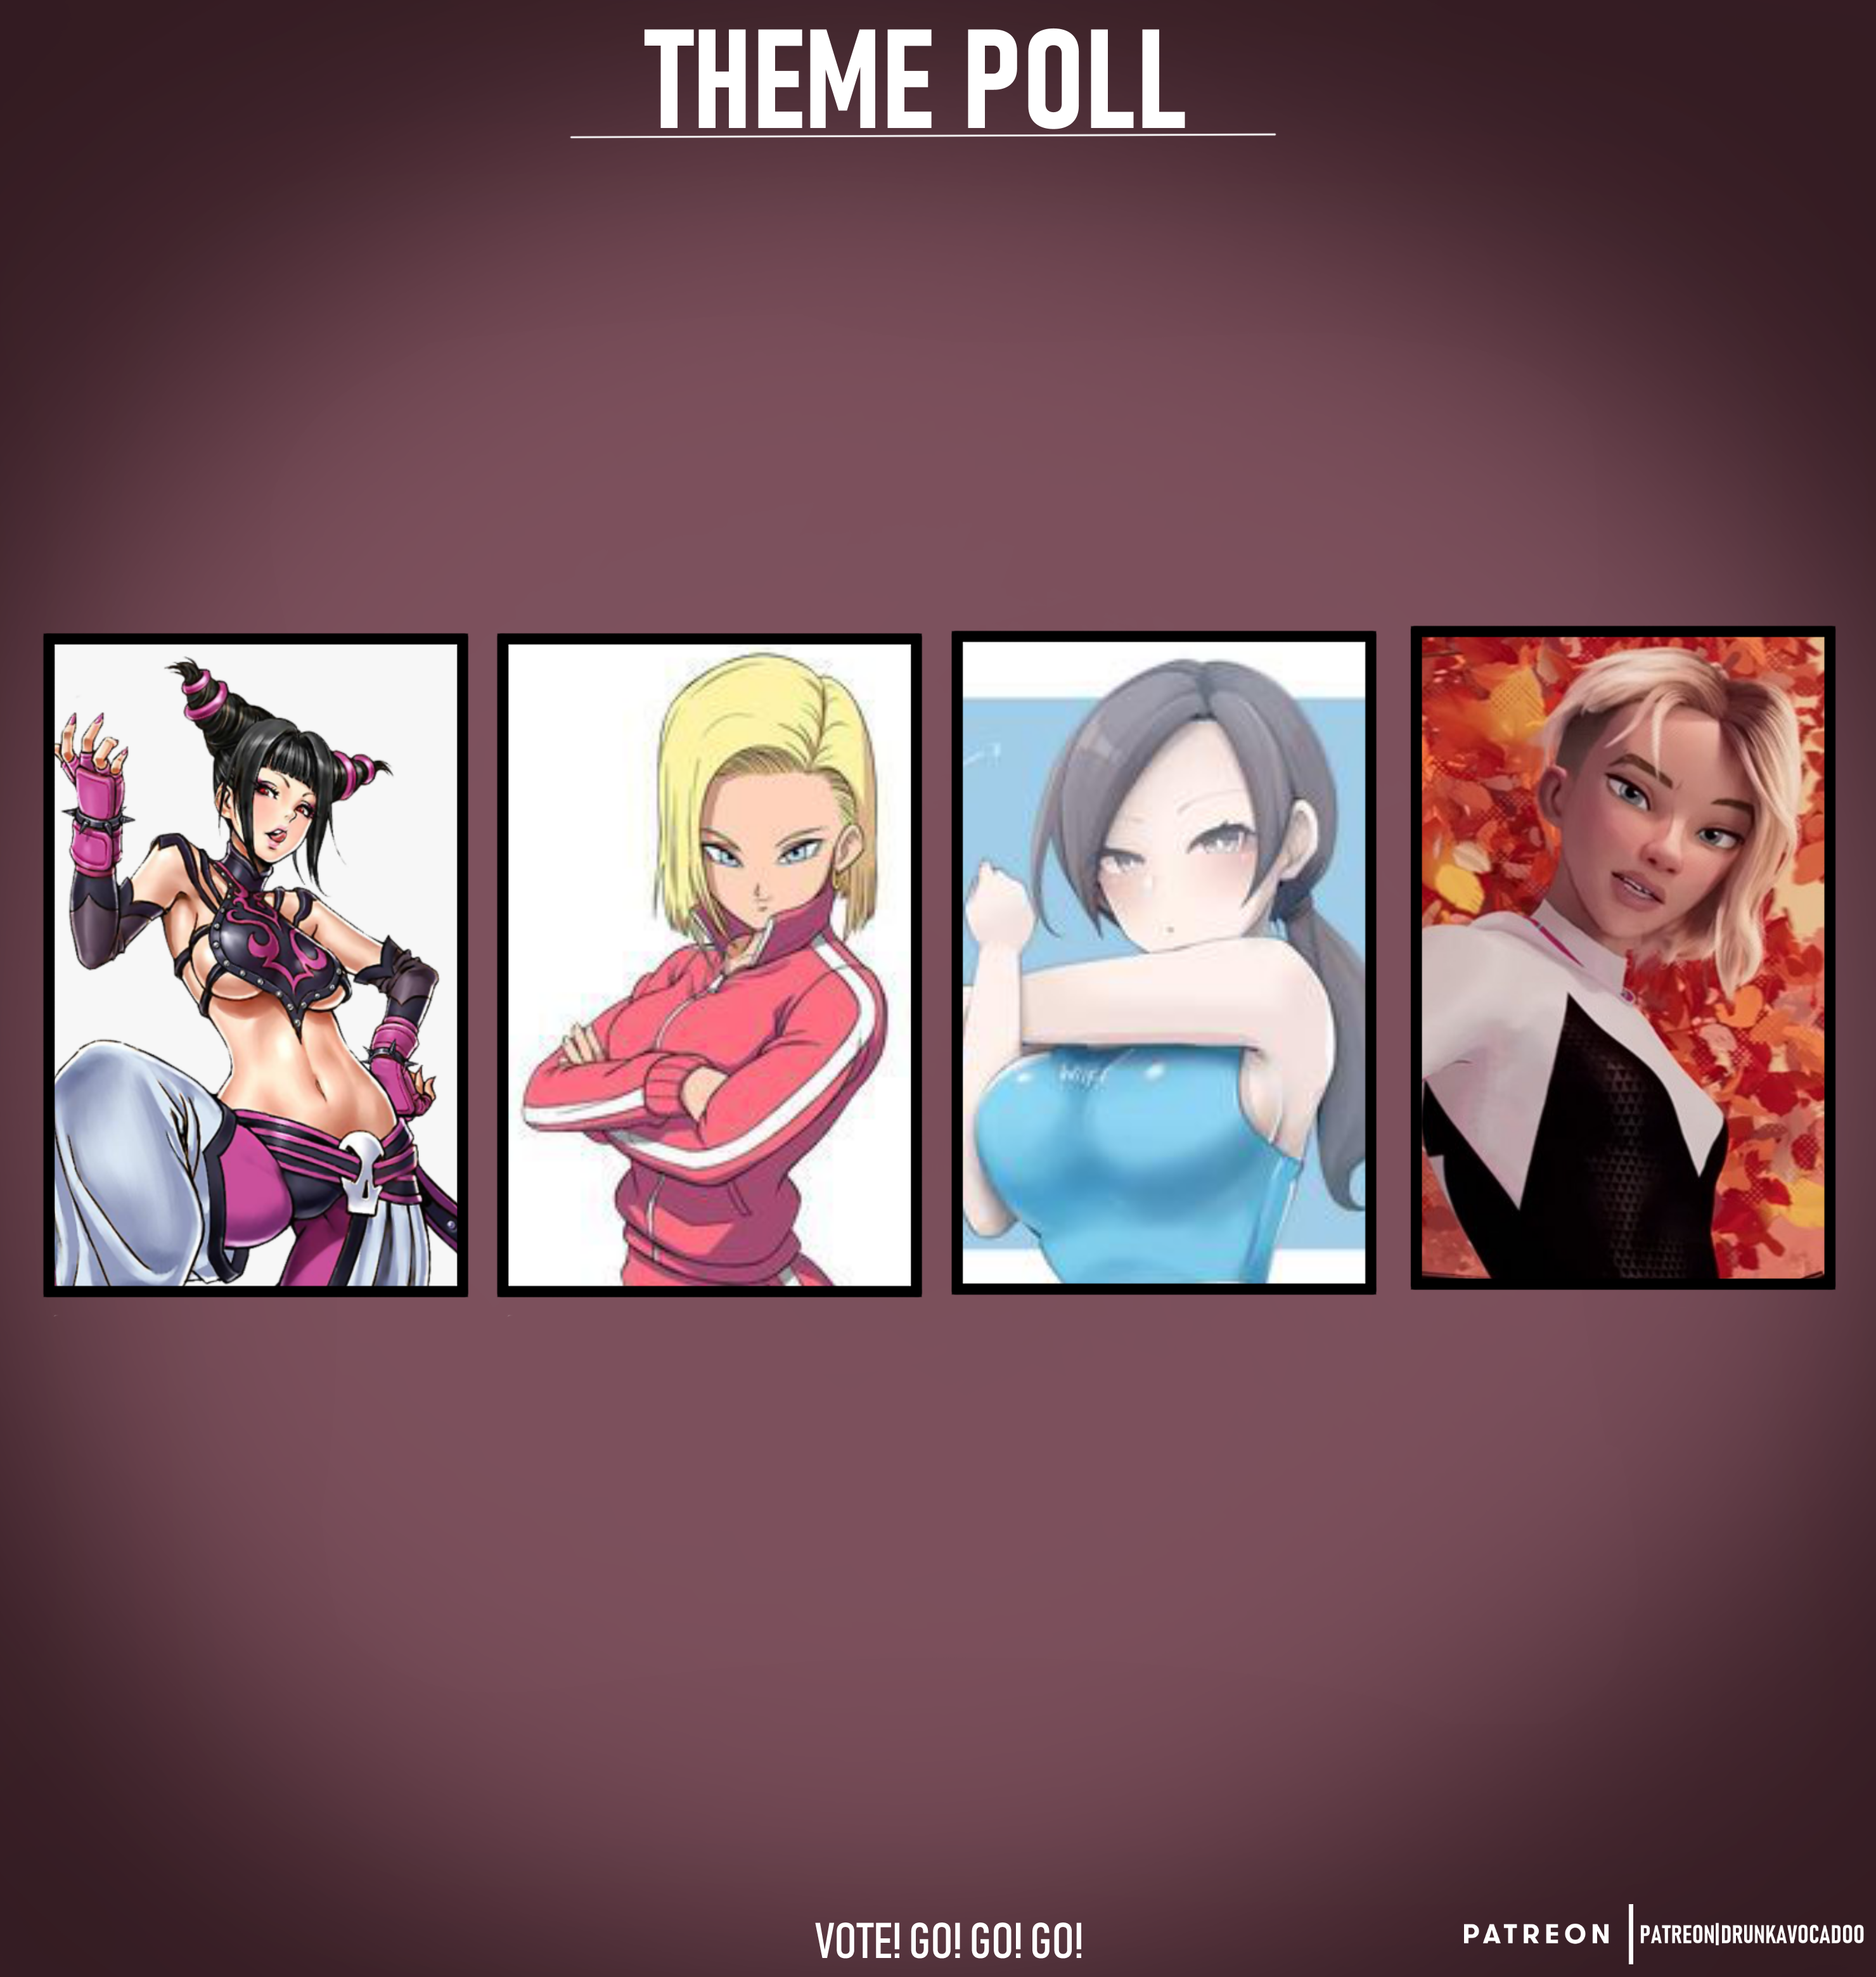 Theme(Fit babes) Poll!